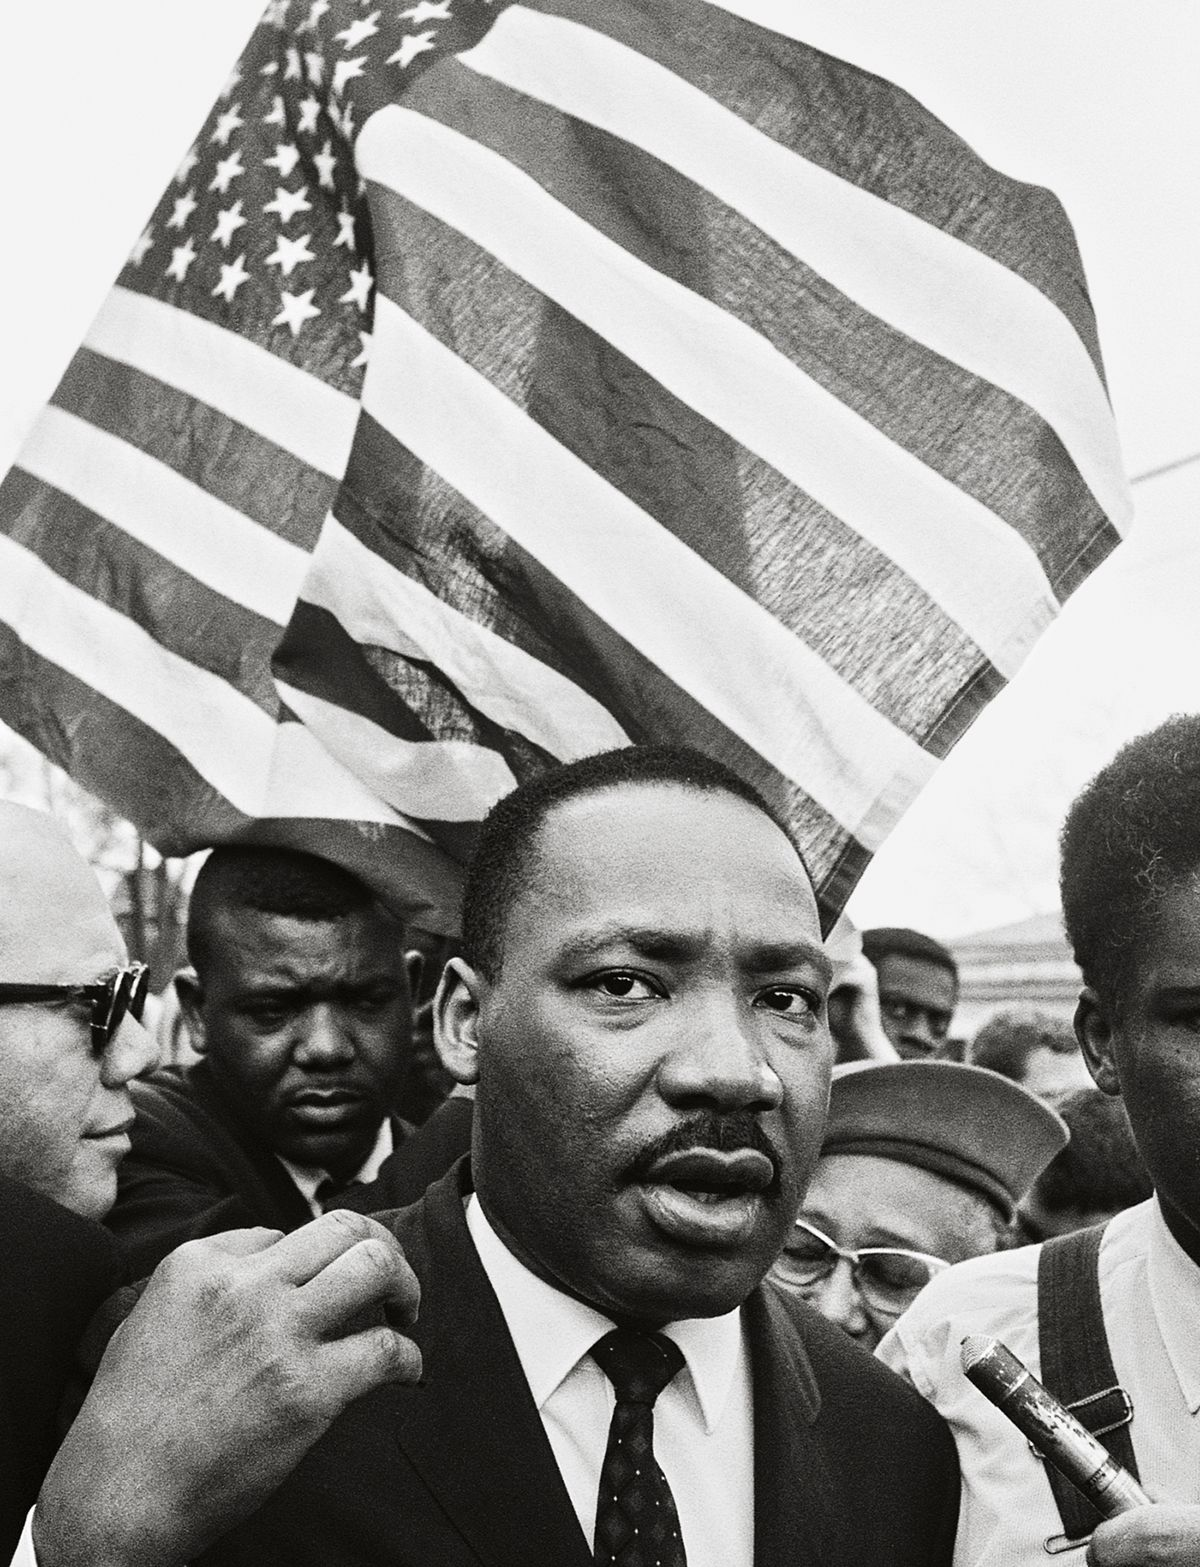 Martin Luther King Jr. (With Flag), Selma March, 1965, 20x 16Inches, Silver Gelatin Photograph, Edition of 25